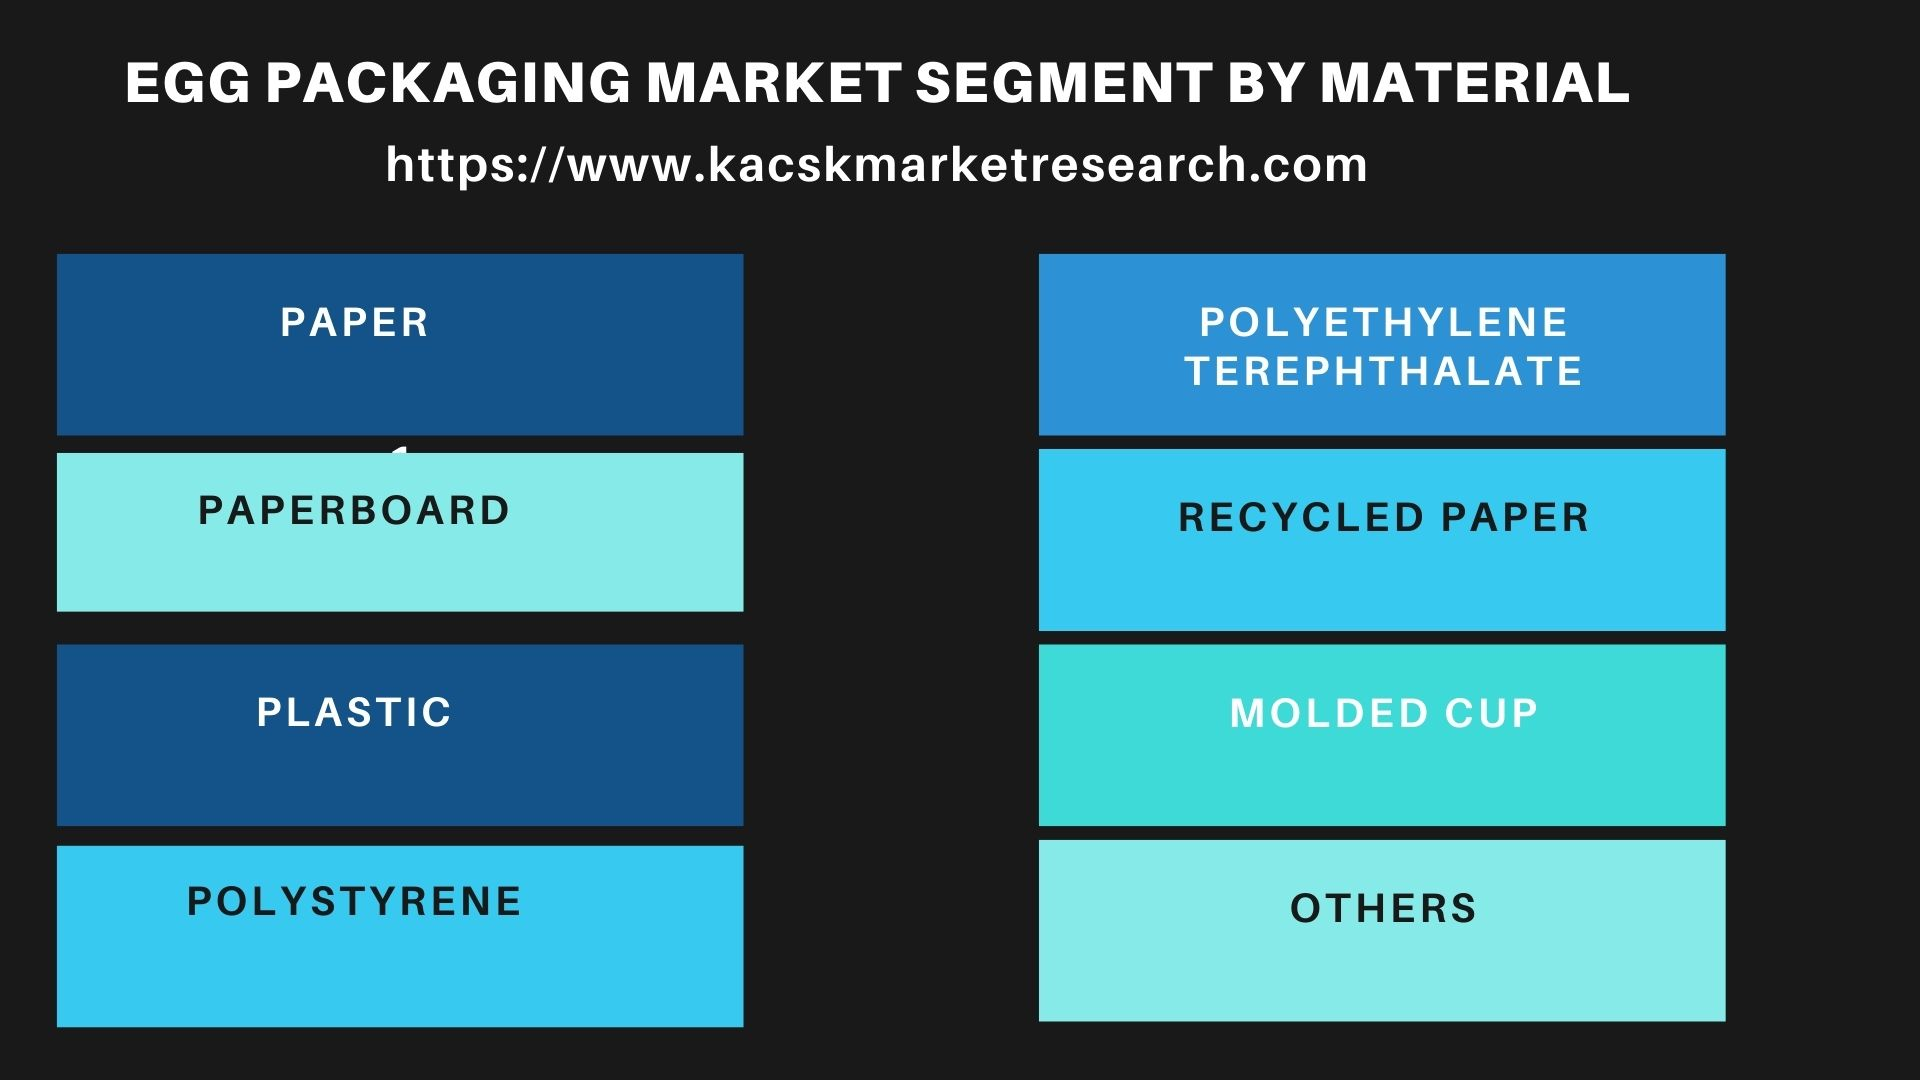 Egg Packaging Market Segment by Material